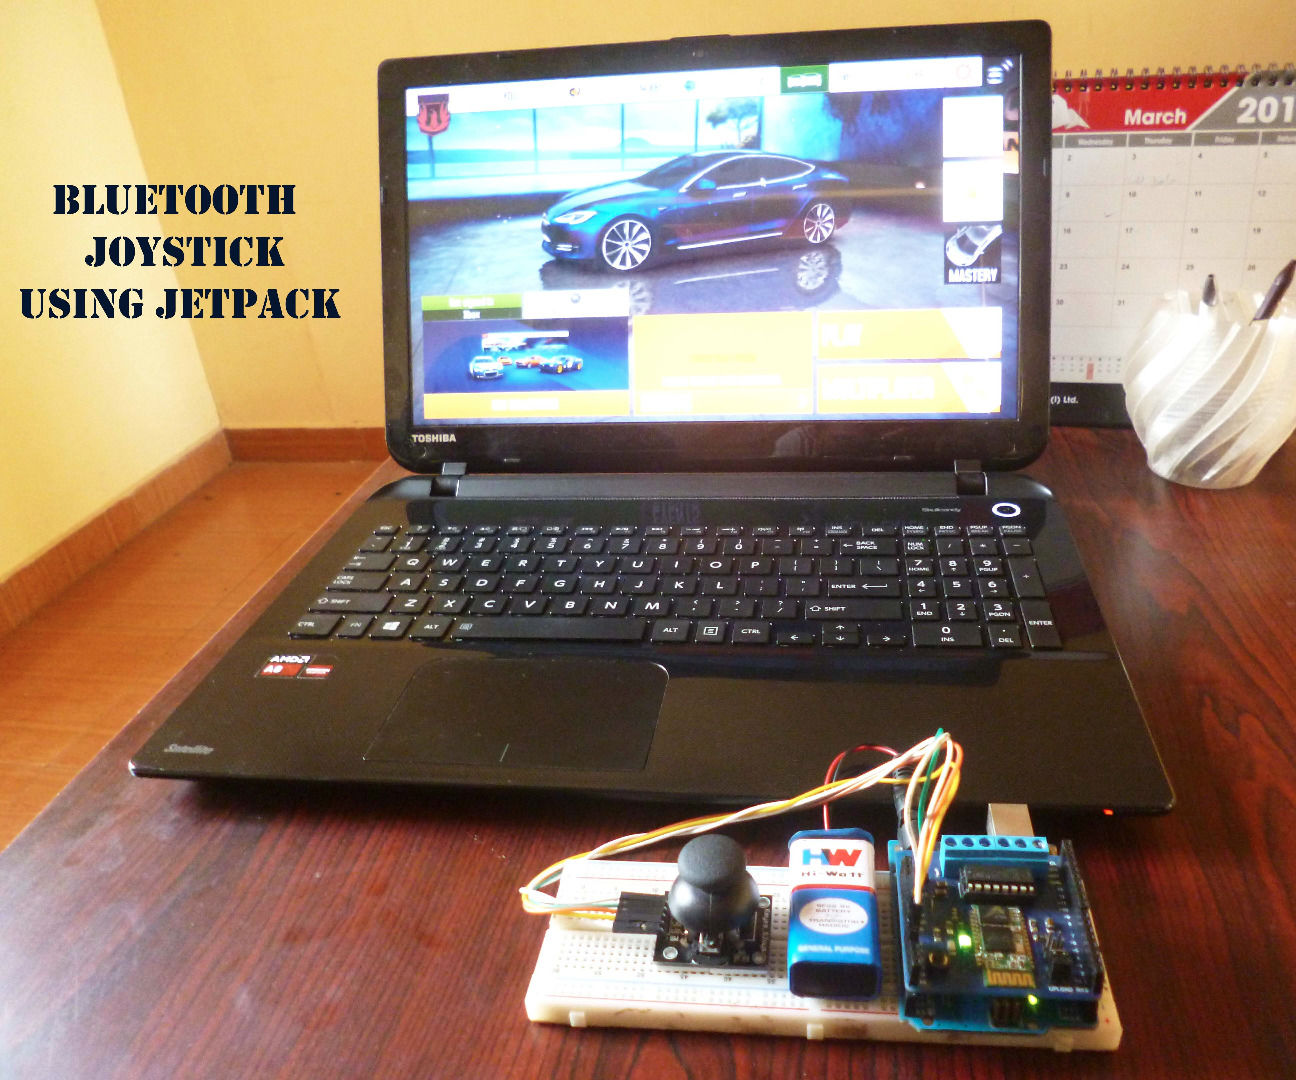 Bluetooth Game Controller(Joystick) With Arduino and Jetpack : 3 Steps - Instructables